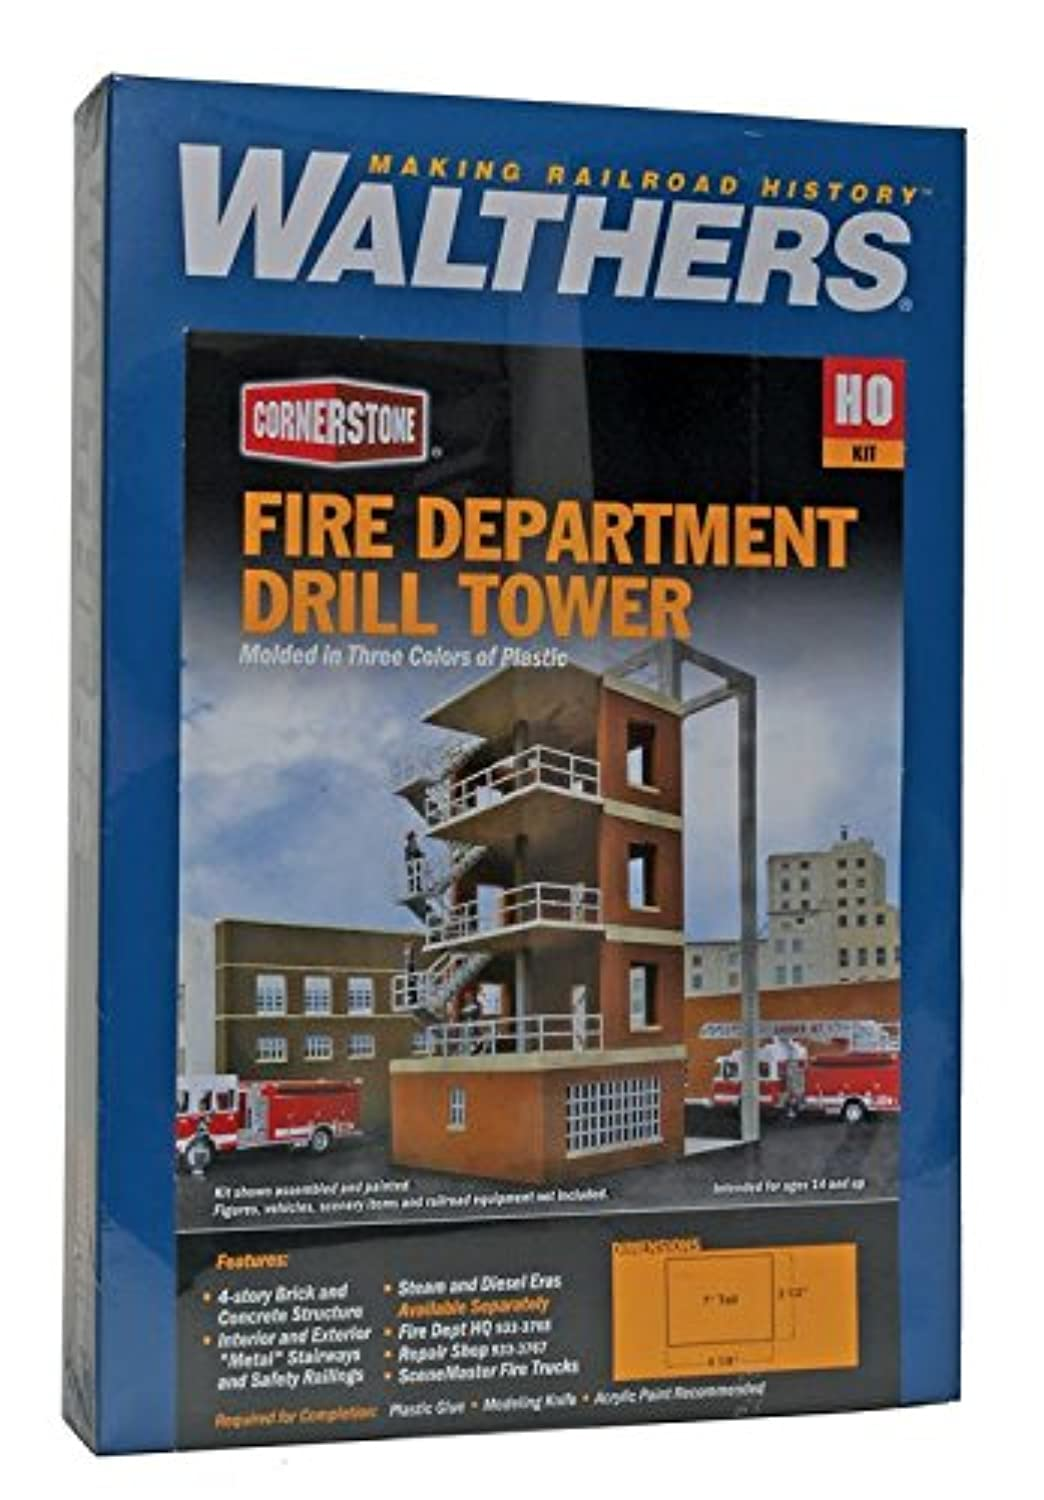 Walthers , Inc。Fire Department修理ショップキット、7 – 1 / 2 x 11 – 1 / 2 x 3 – 3 / 8